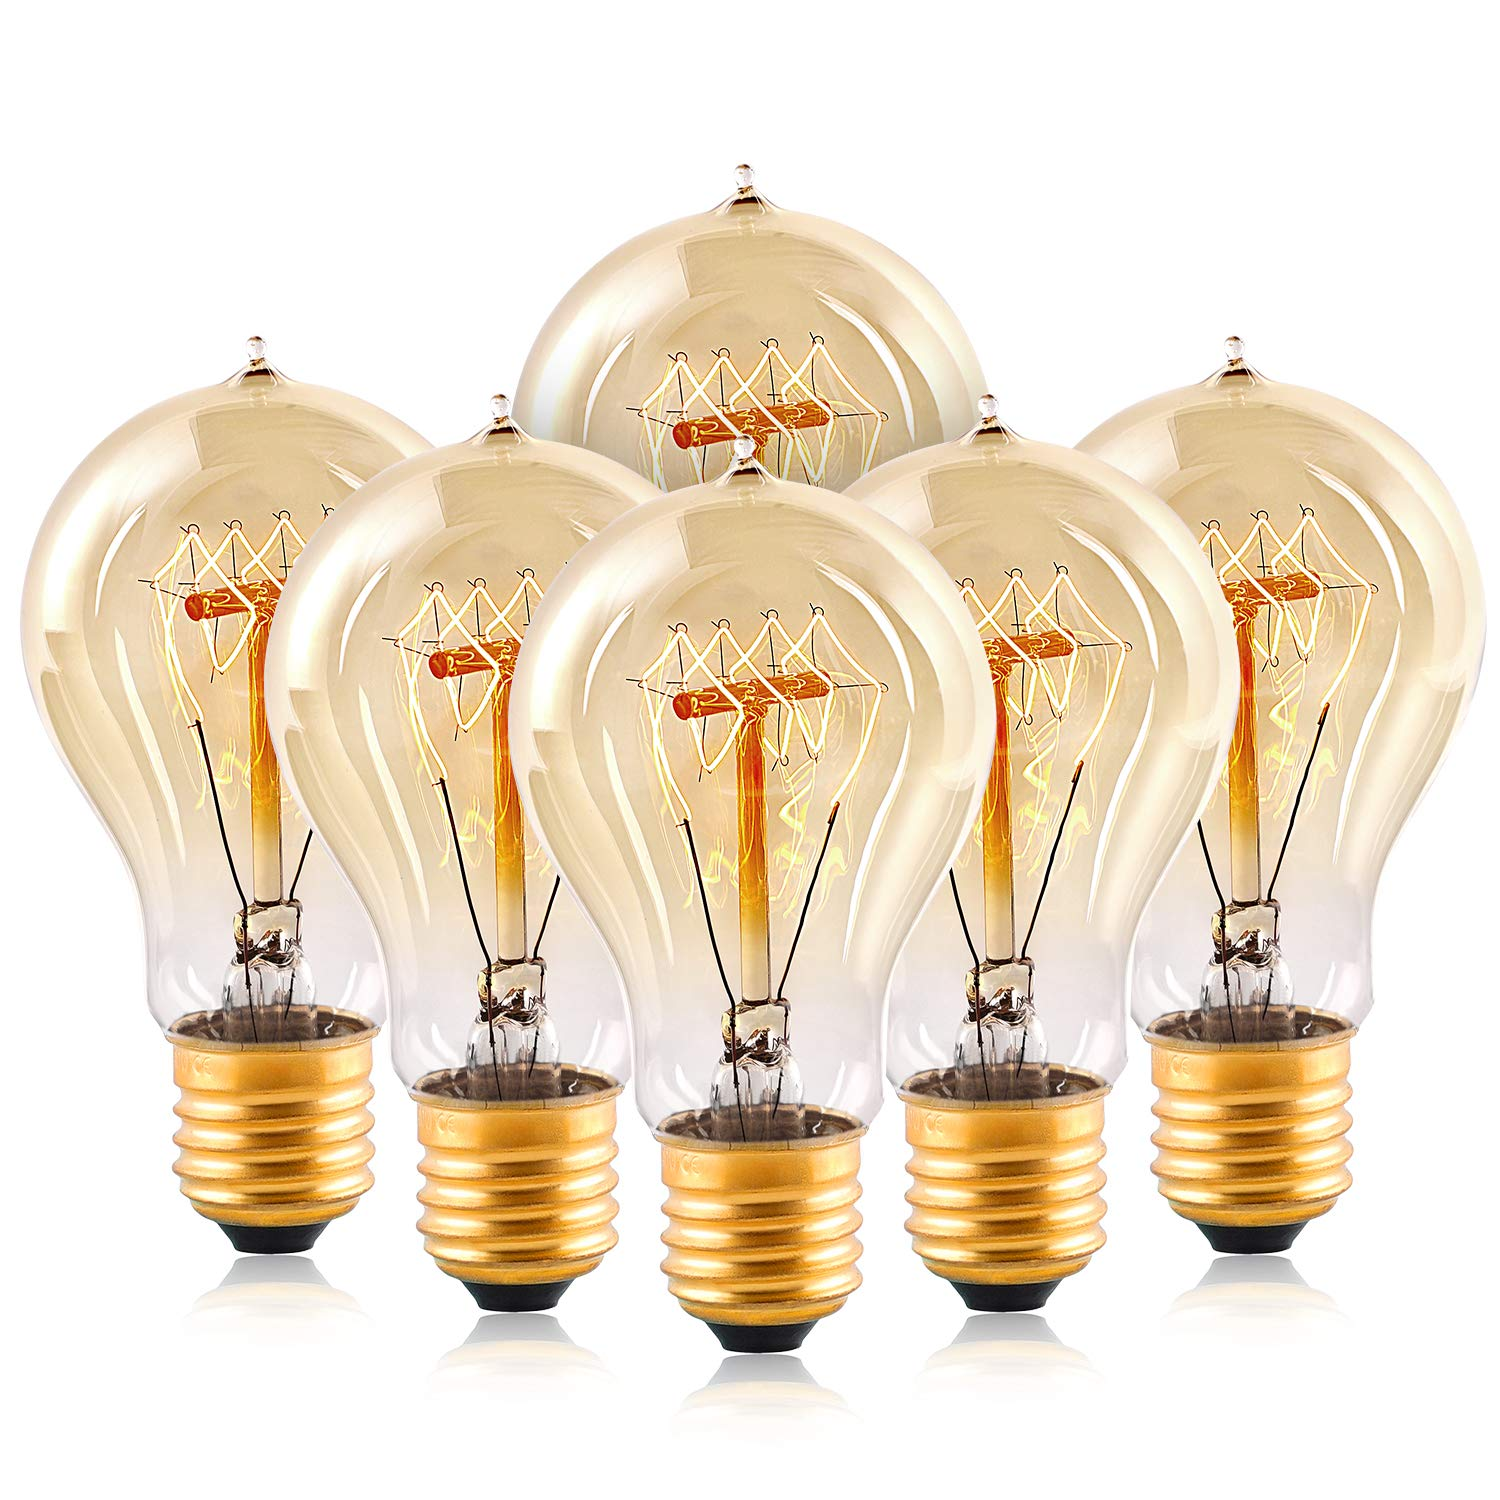 Edison Light Bulbs,HESSION A19 40w Vintage Antique Tungsten Filament Bulbs,E26 Base Edison Bulbs, Decorative Light Bulb Dimmable 110V Amber Glass(6 Pack) by HESSION (Image #1)